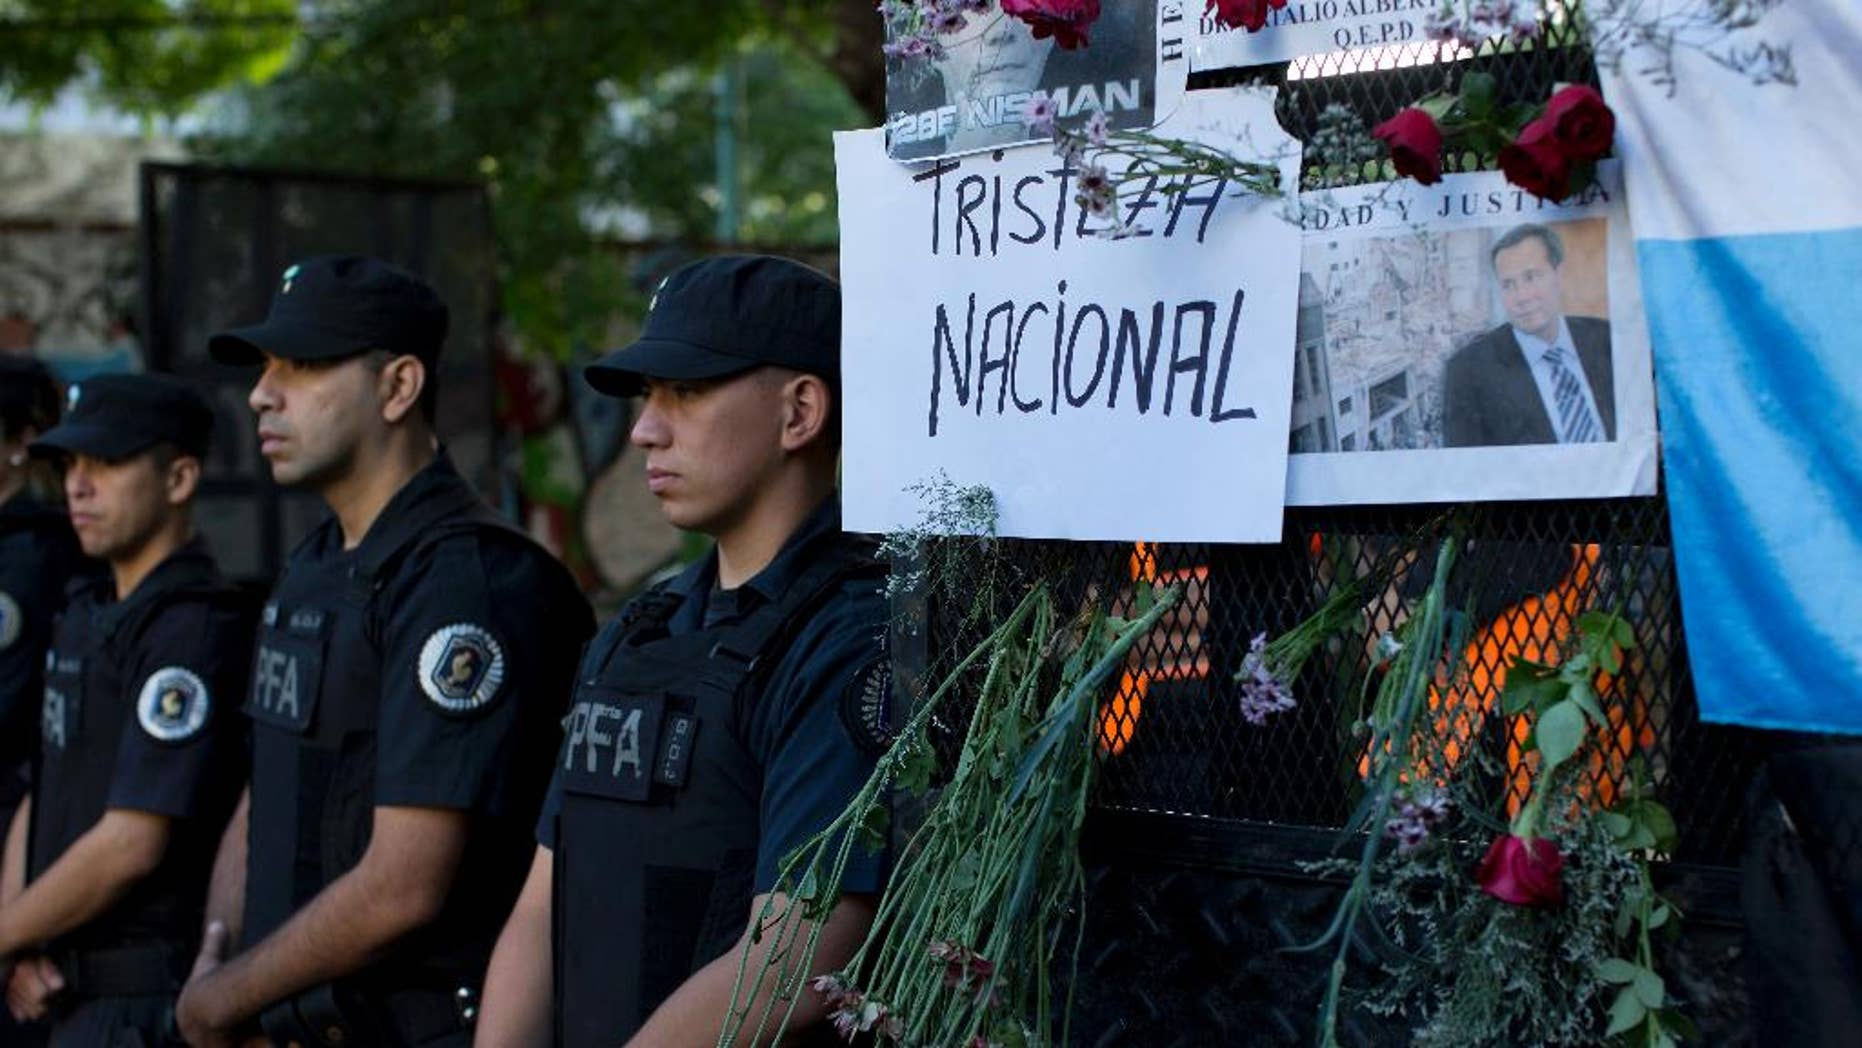 """An image of the late prosecutor Alberto Nisman is taped to a grate next to a hand written sign that reads in Spanish; """"National sadness,"""" outside the funeral home where a private wake was held before the start of the funeral procession, in Buenos Aires, Argentina, Thursday, Jan. 29, 2015. The prosecutor was scheduled to appear before Congress the day after he was found dead in his apartment on Jan. 18, to detail his allegations that President Cristina Fernandez had conspired to protect some of the Iranian suspects in the 1994 bombing of a Jewish center. The man who gave Nisman the gun that killed him said Wednesday that Nisman feared for the safety of his daughters and didn't trust the policemen protecting him. (AP Photo/Rodrigo Abd)"""